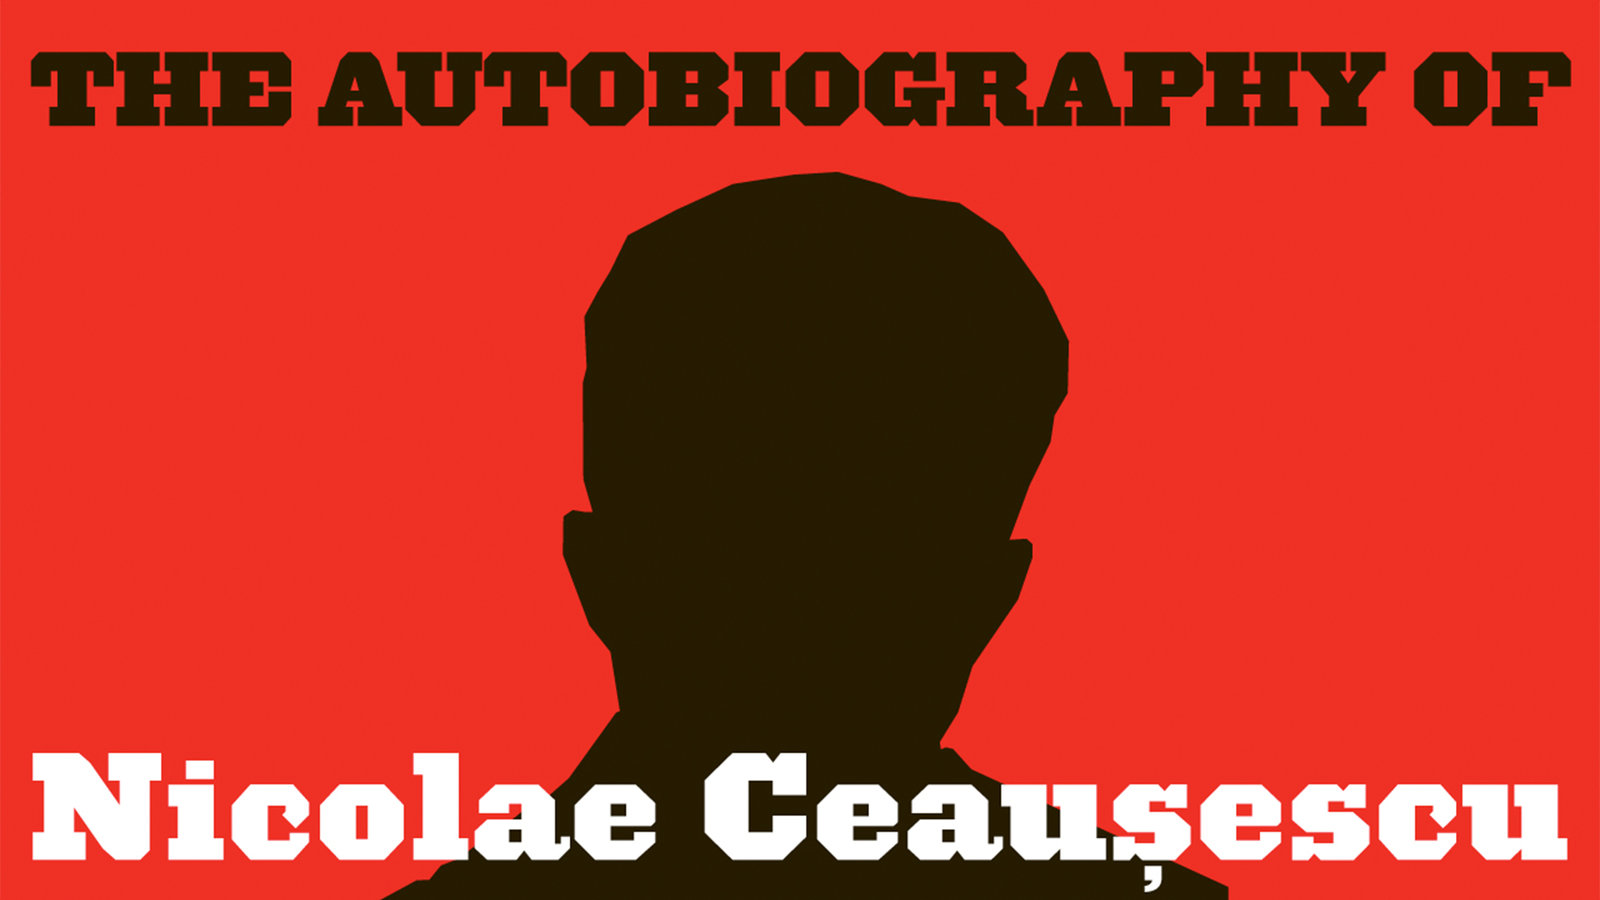 The Autobiography of Nicolae Ceausescu - A Portrait of the Romanian Dictator